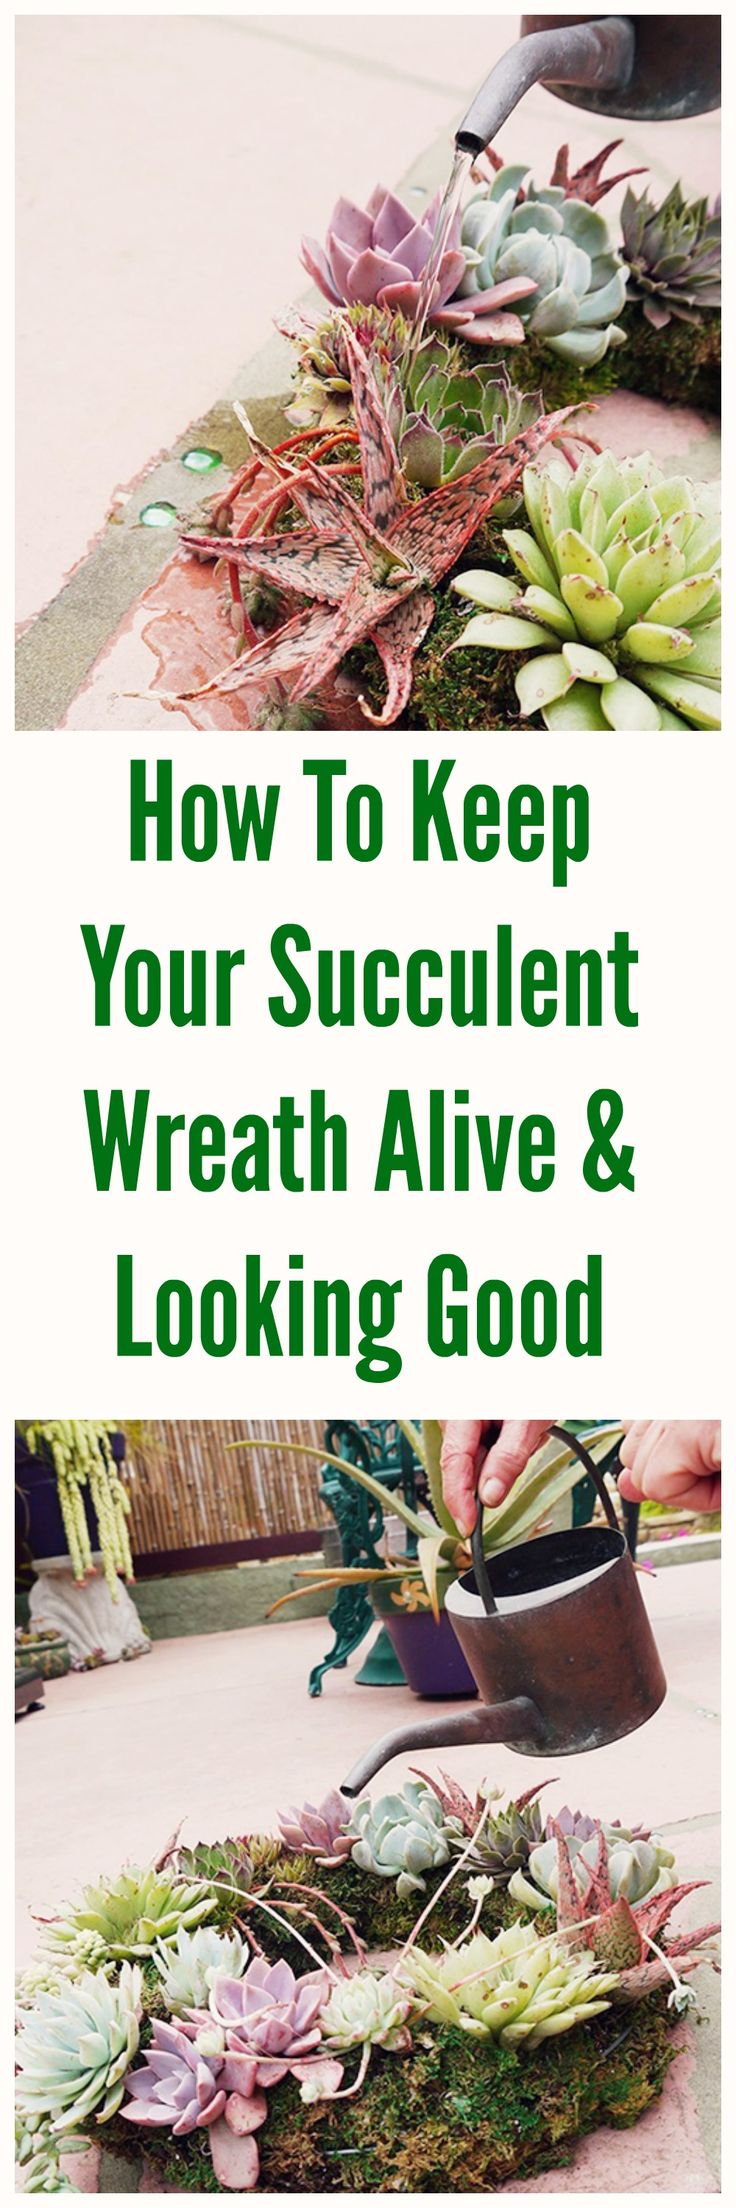 25 best ideas about succulent frame on pinterest for How to keep succulents alive indoors